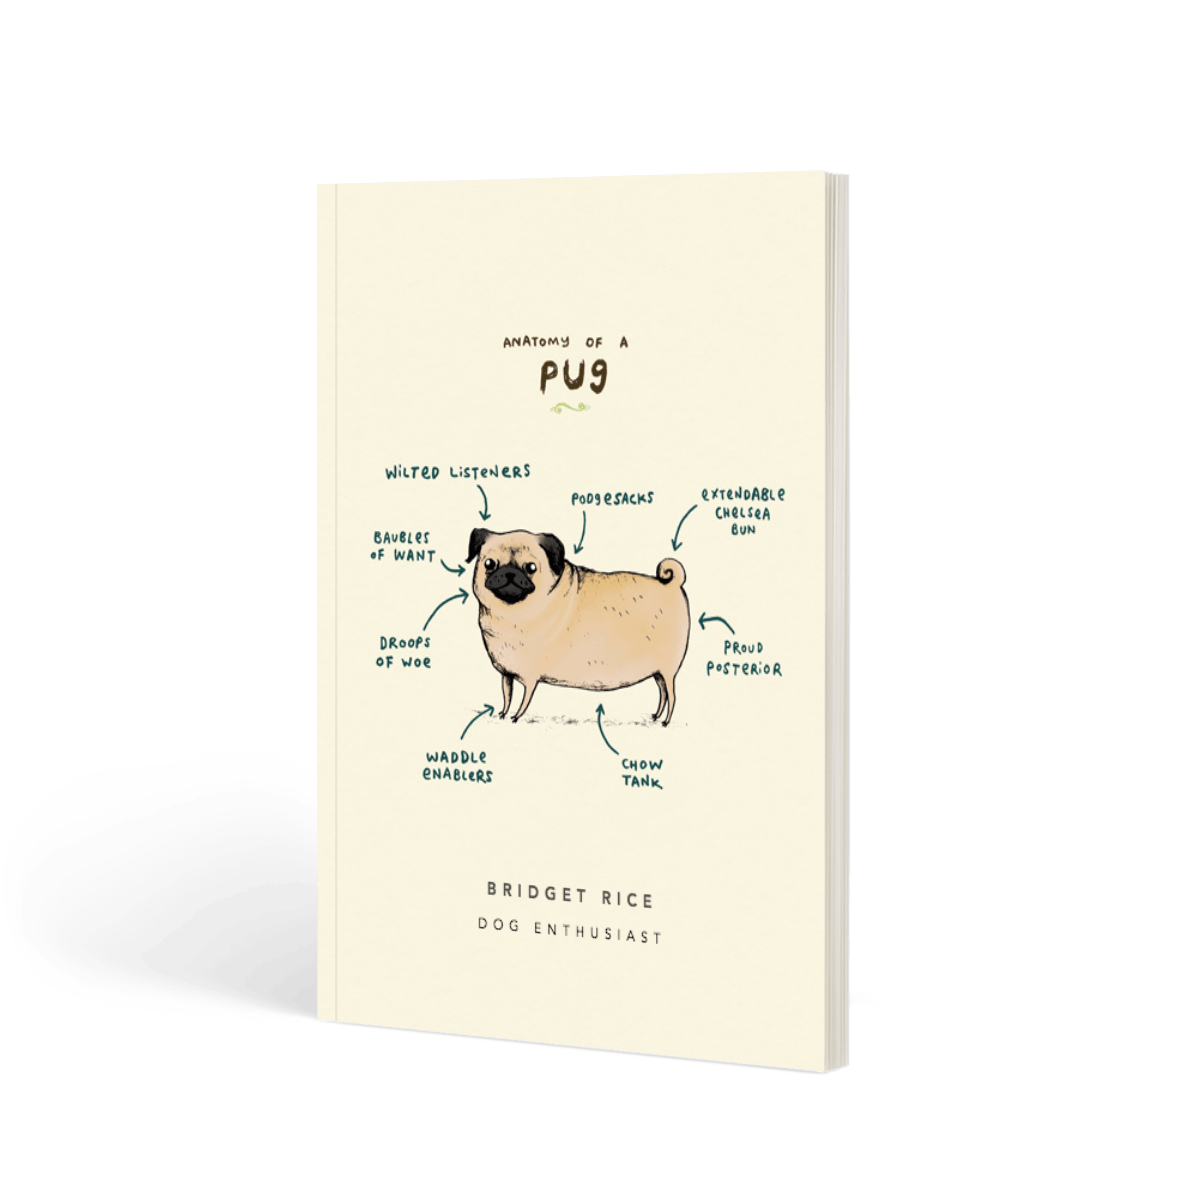 Https%3a%2f%2fwww.papier.com%2fproduct image%2f10072%2f6%2fanatomy of a pug 2562 front 1470656658.png?ixlib=rb 1.1